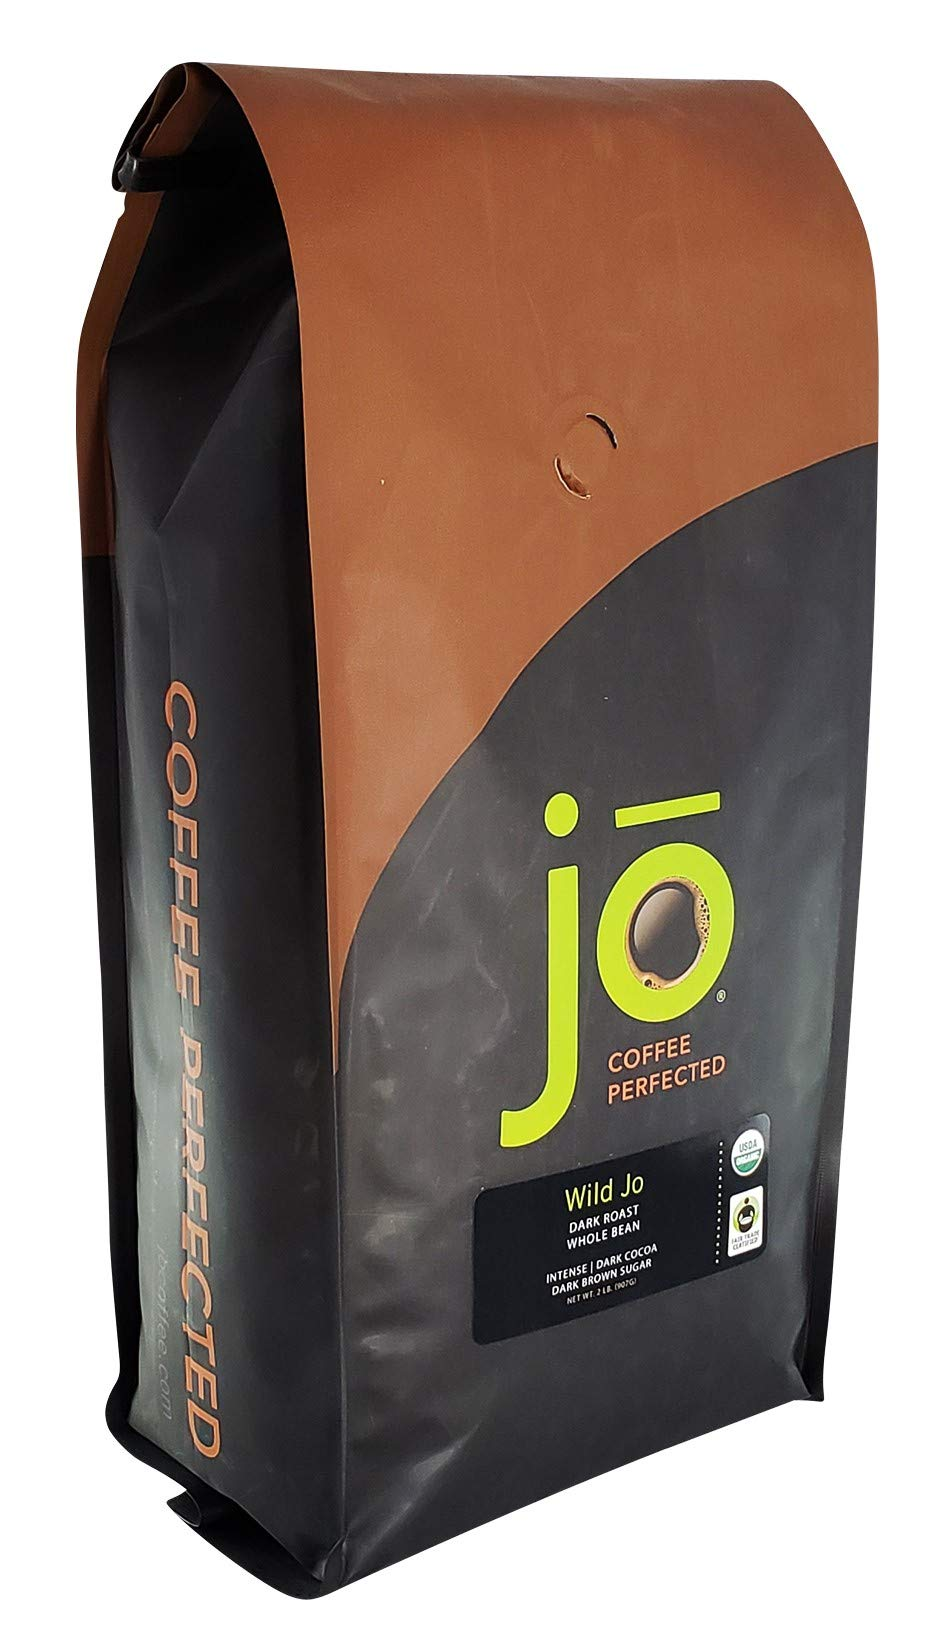 WILD JO: 2 lb, Dark French Roast Organic Whole Bean Coffee, Bold Strong Rich Wicked Good Coffee! Great Brewed or Espresso, USDA Certified Fair Trade Organic, NON-GMO 100% Arabica Gluten Free Coffee